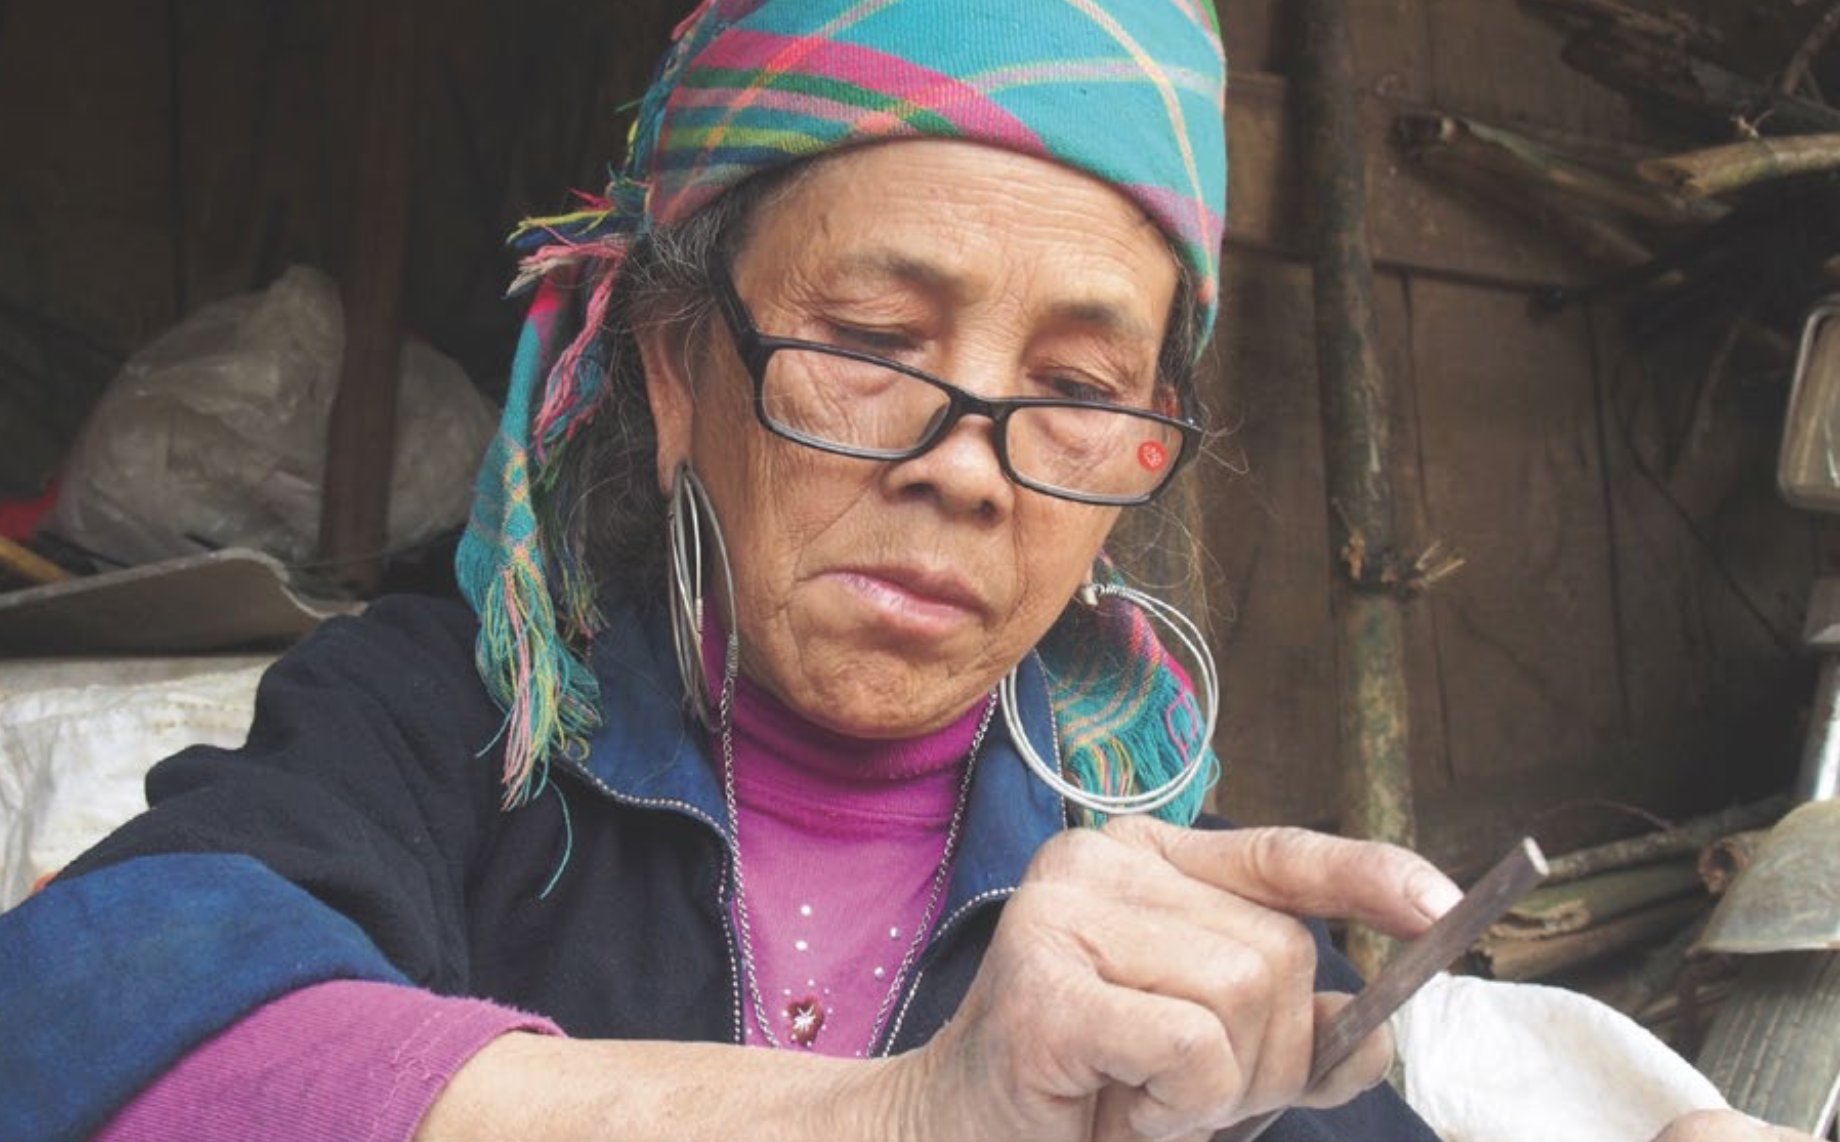 Hmong Woman crafting Saffair bags